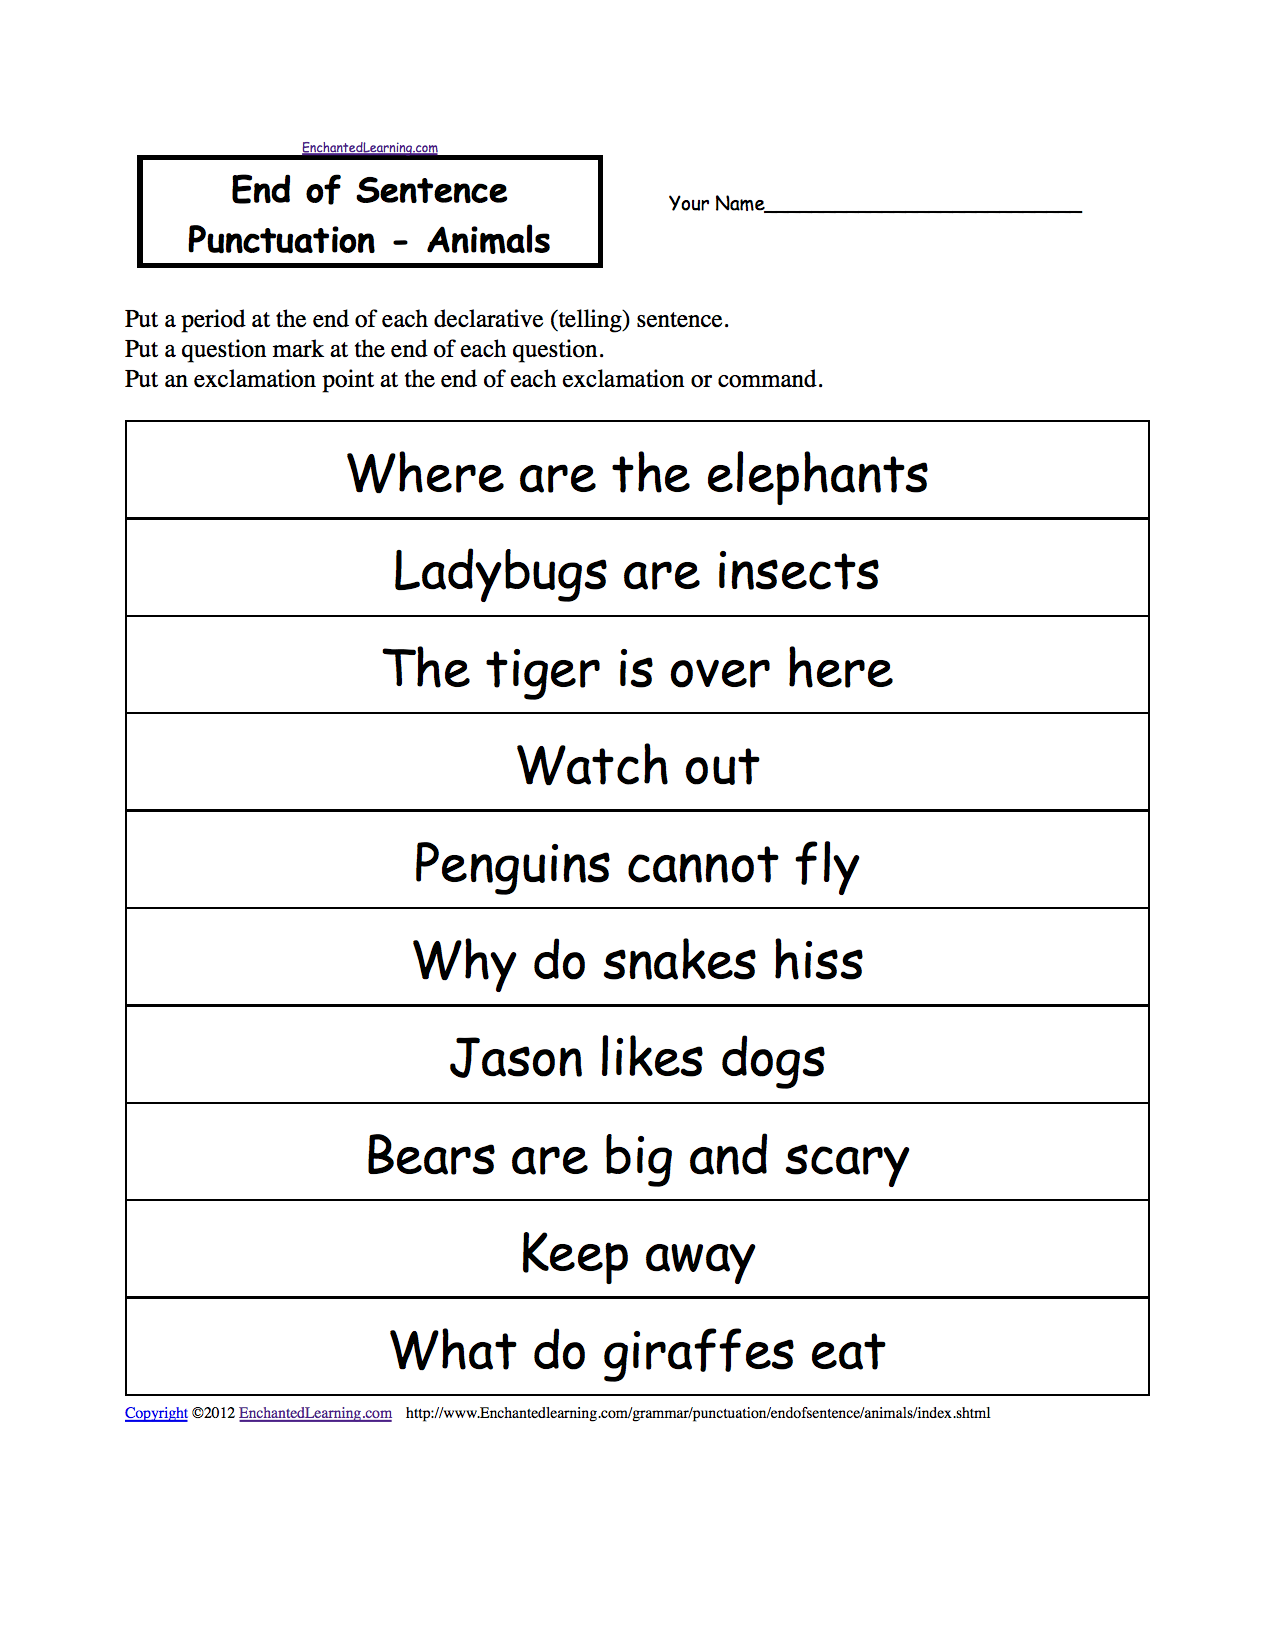 worksheet Ending Punctuation Worksheets end of sentence punctuation printable worksheets punctuate